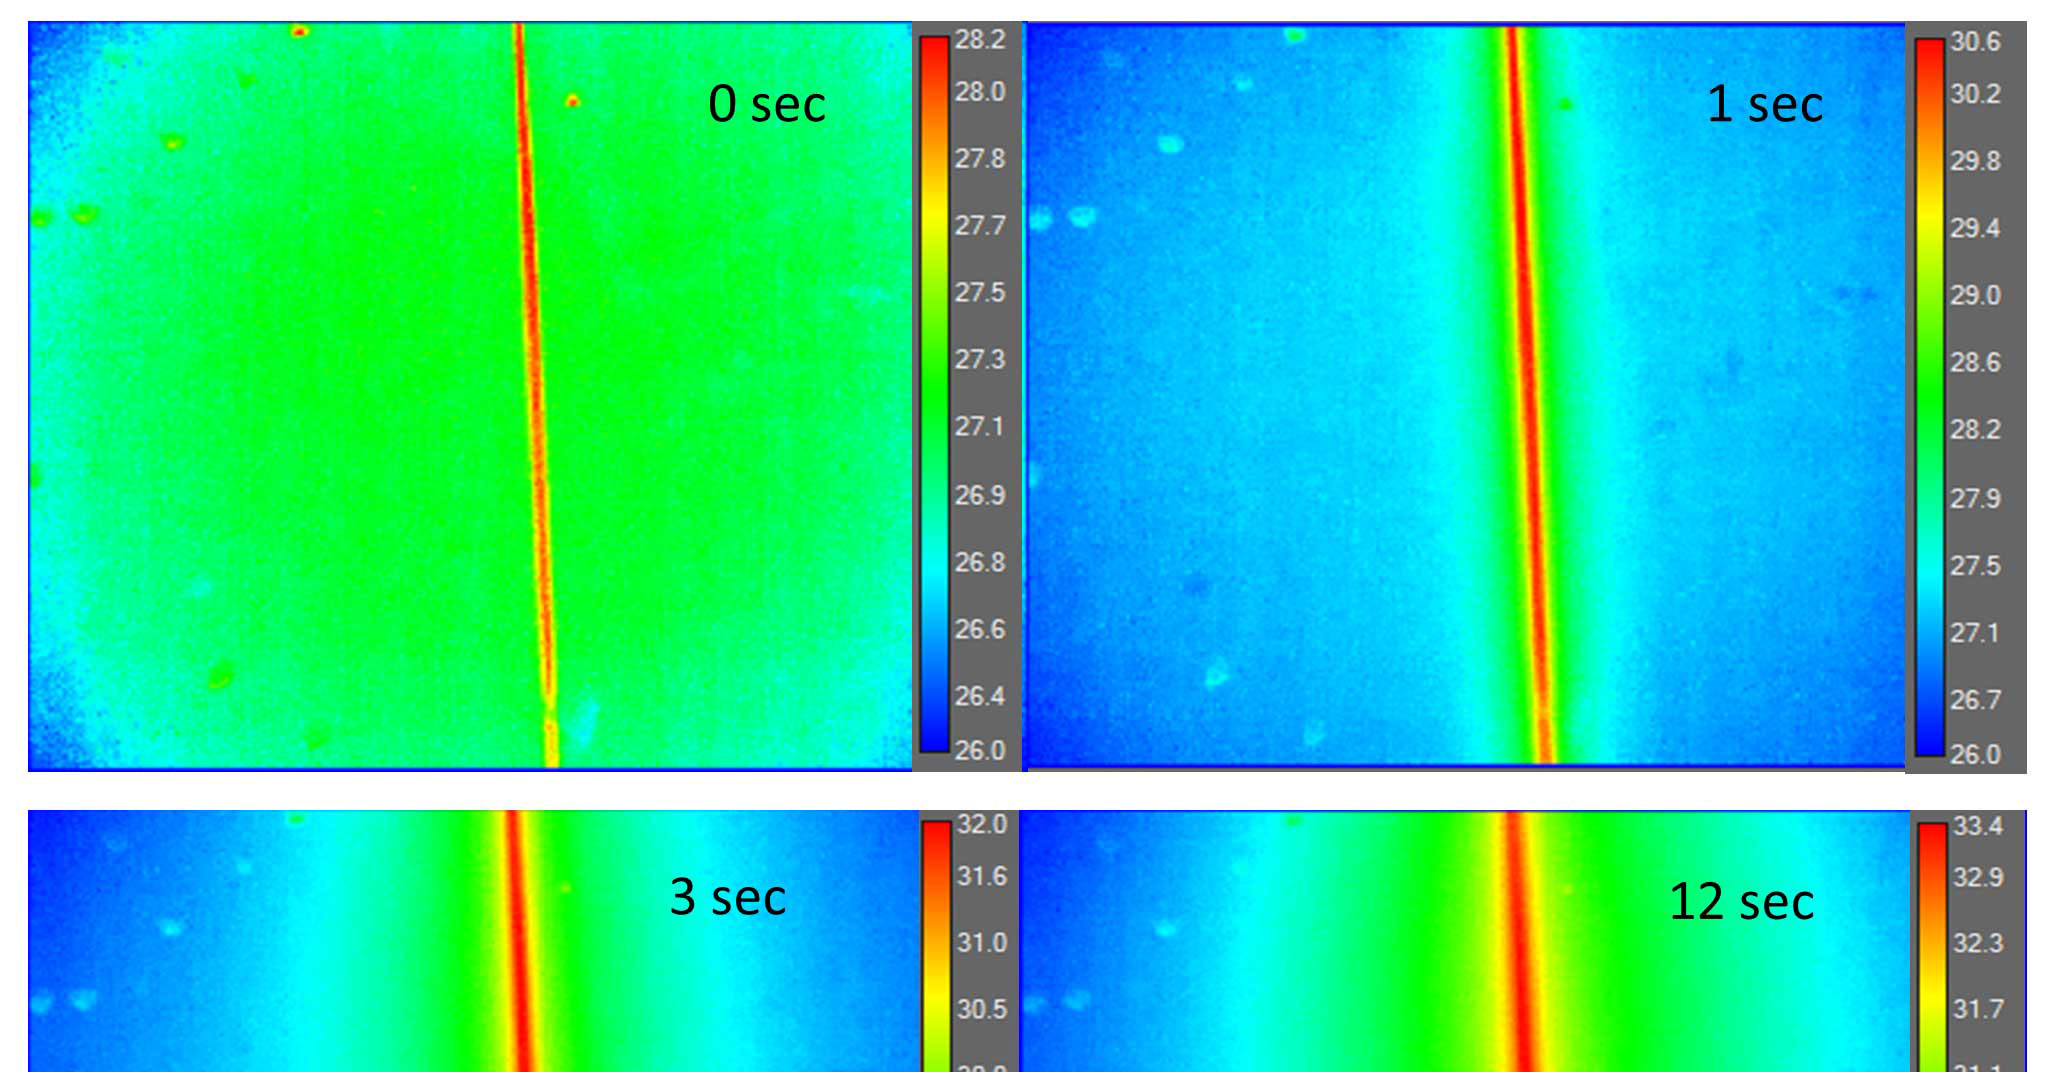 FLIR Cameras Reveal Thermal Characteristics of Microelectronic Devices